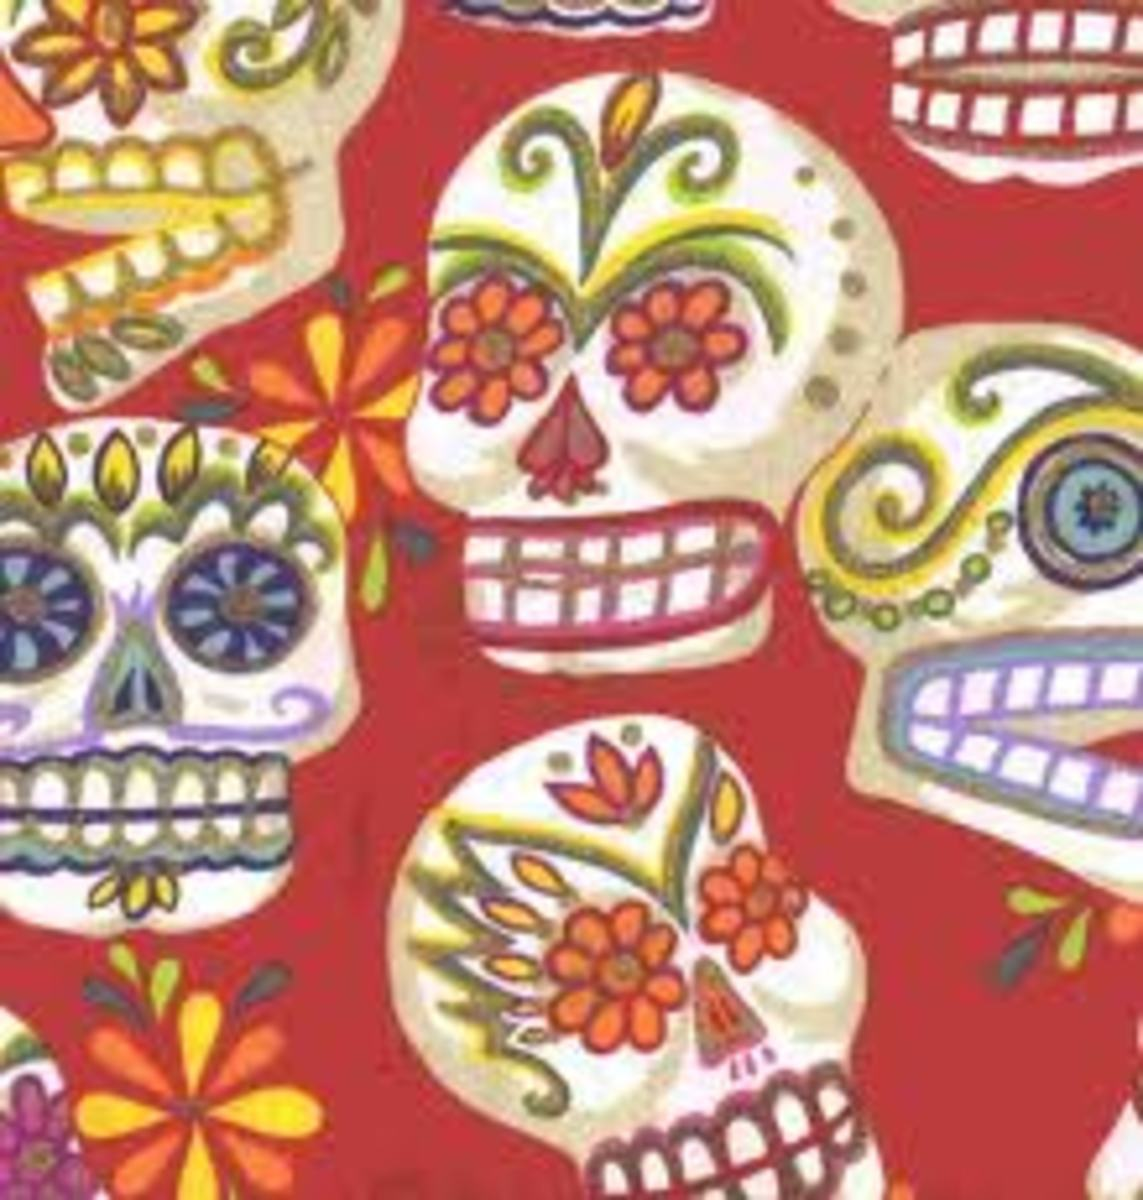 Dia de los muertos skulls are often brightly decorated with flowers - read on to find out why...